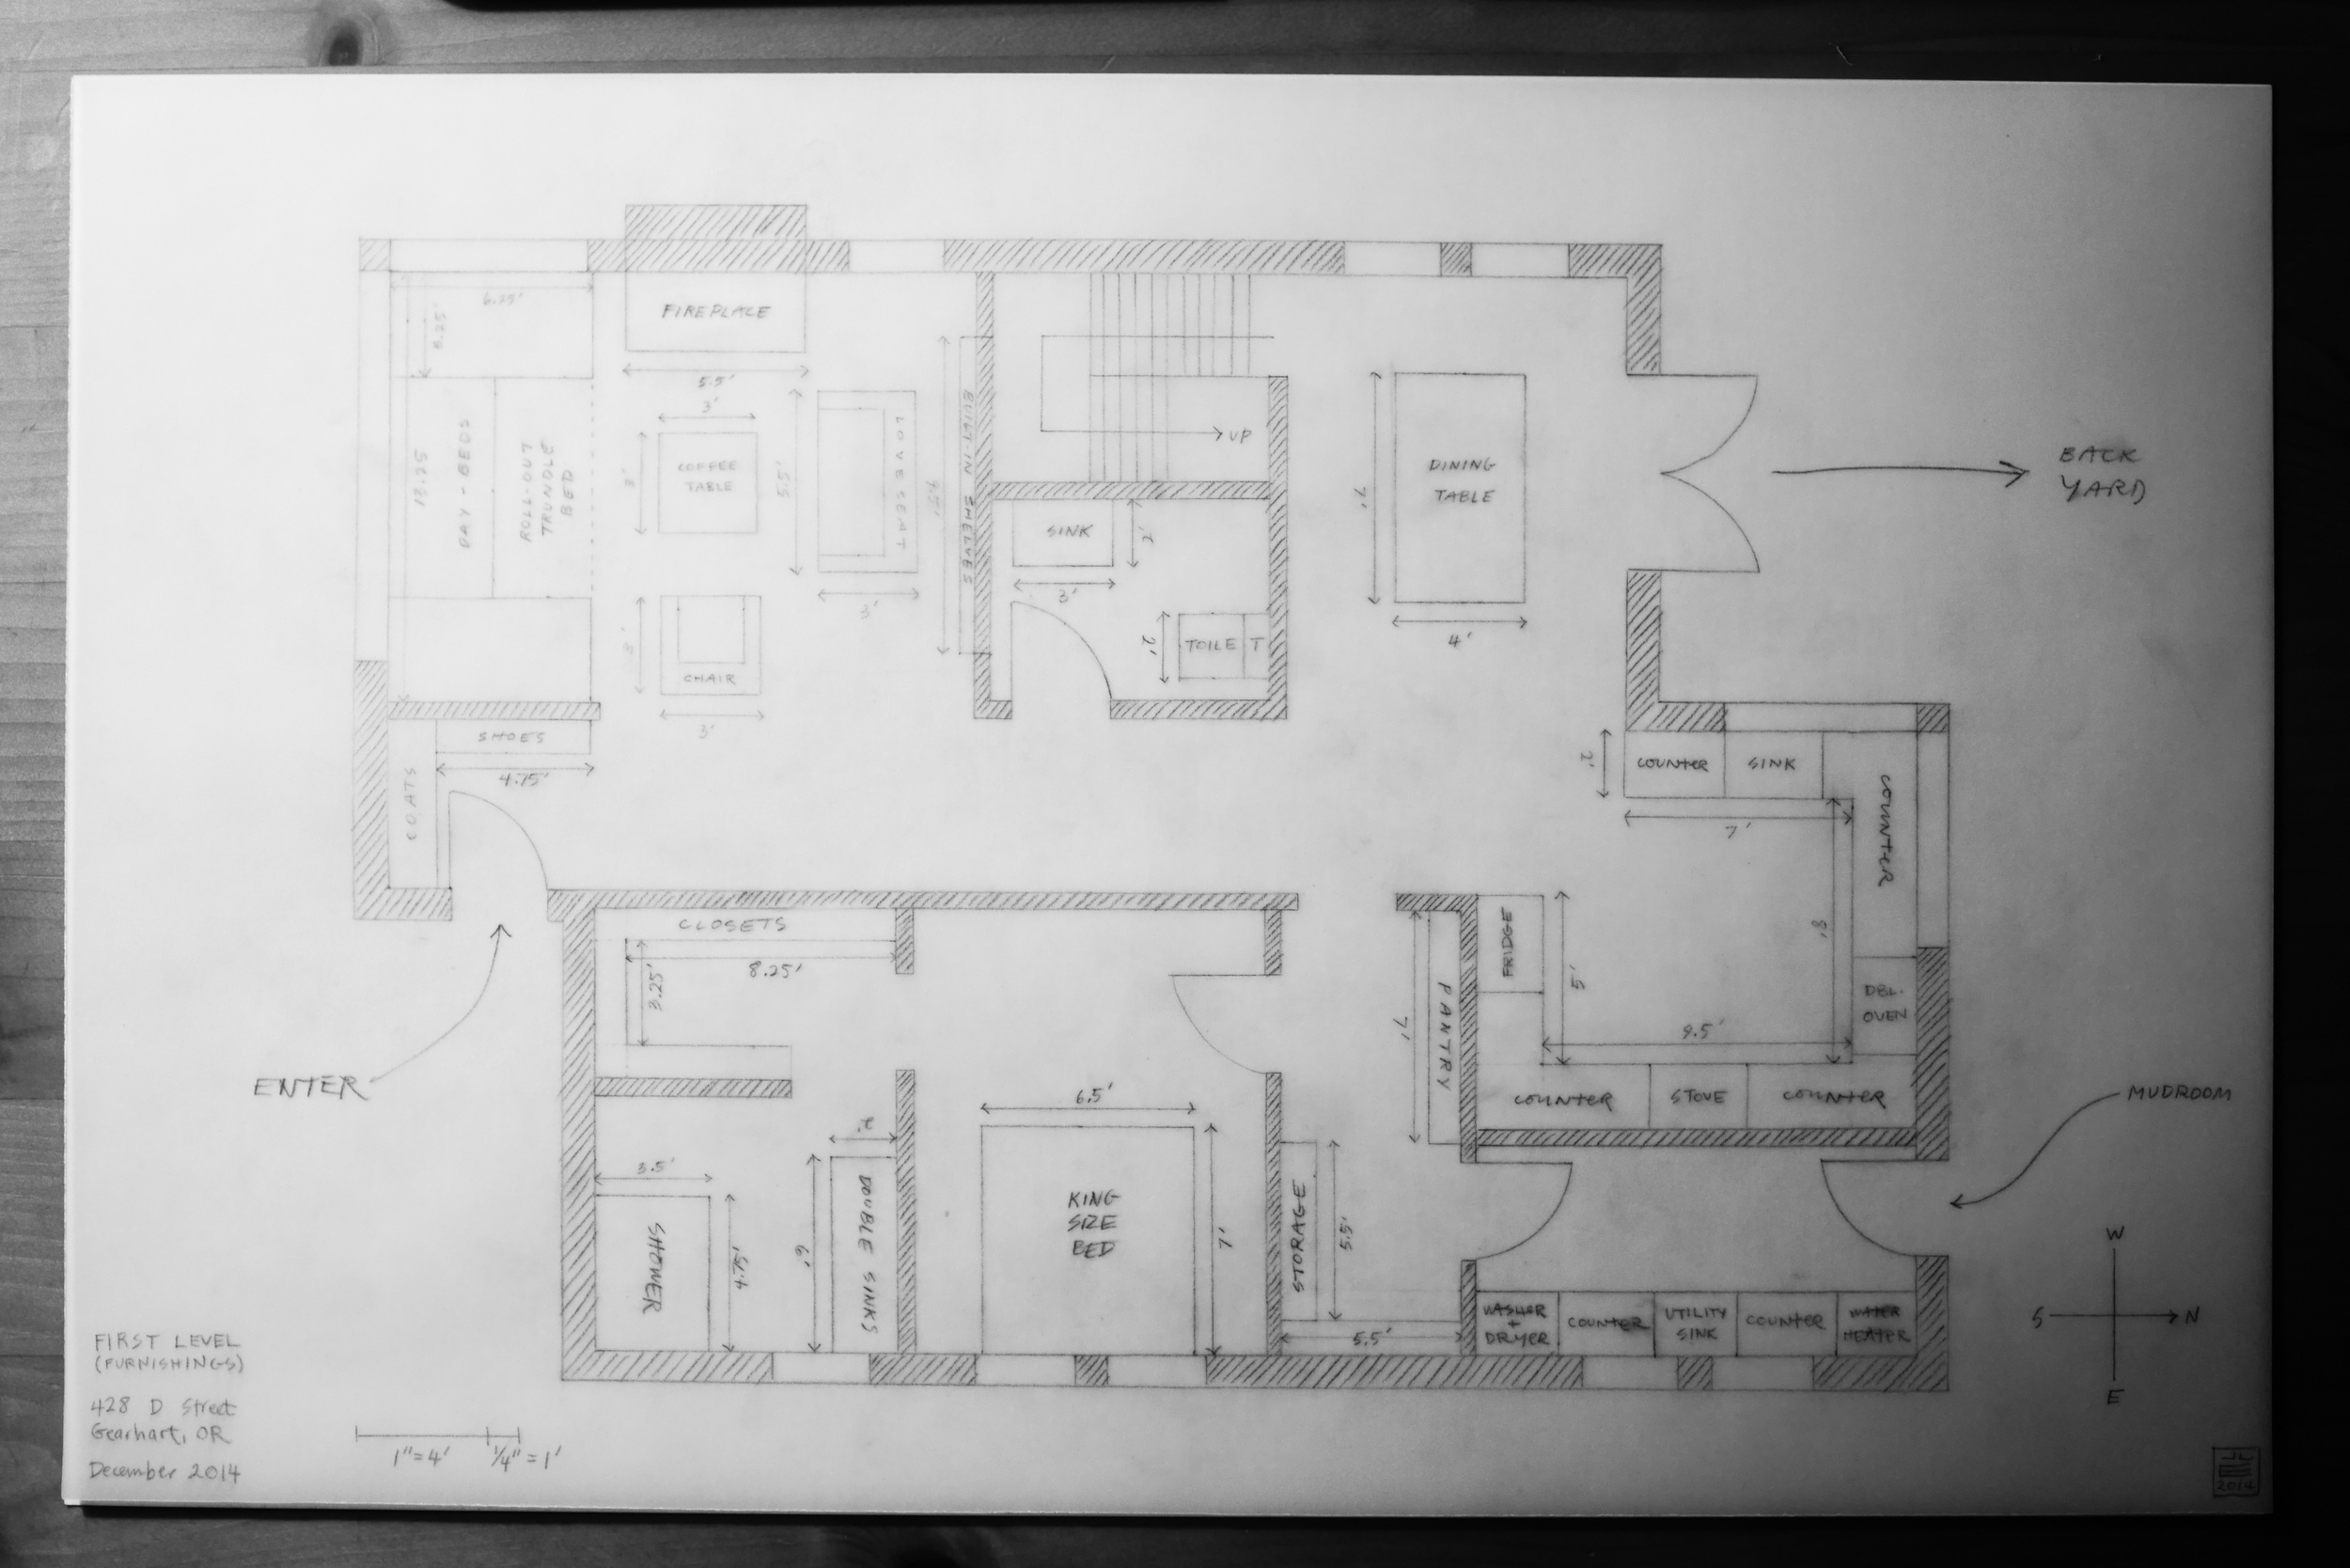 I traced over the first drawing to make another one that showed furnishings. I thought it would be less cluttered this way, but I probably could have gotten away with all of it in one image...